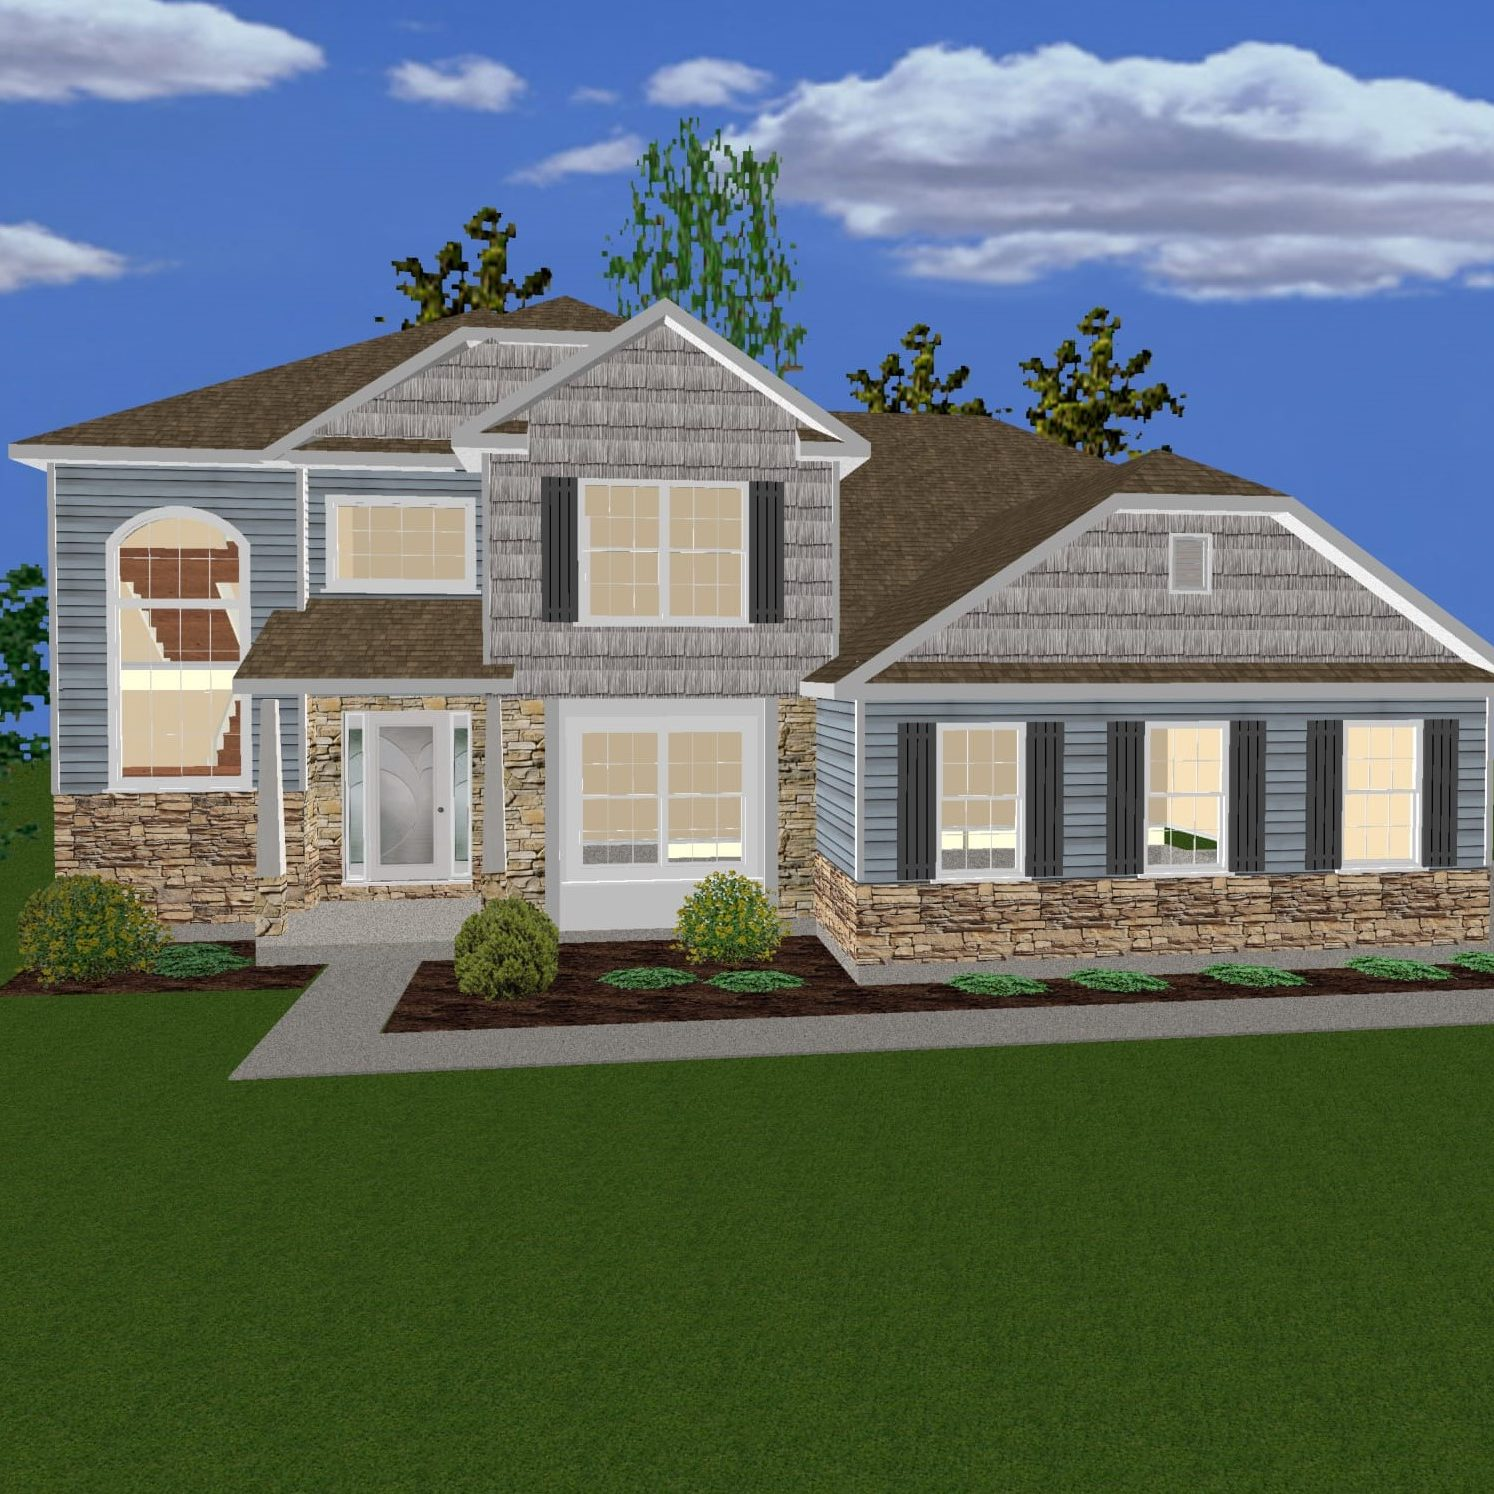 Homearama Rendering-1